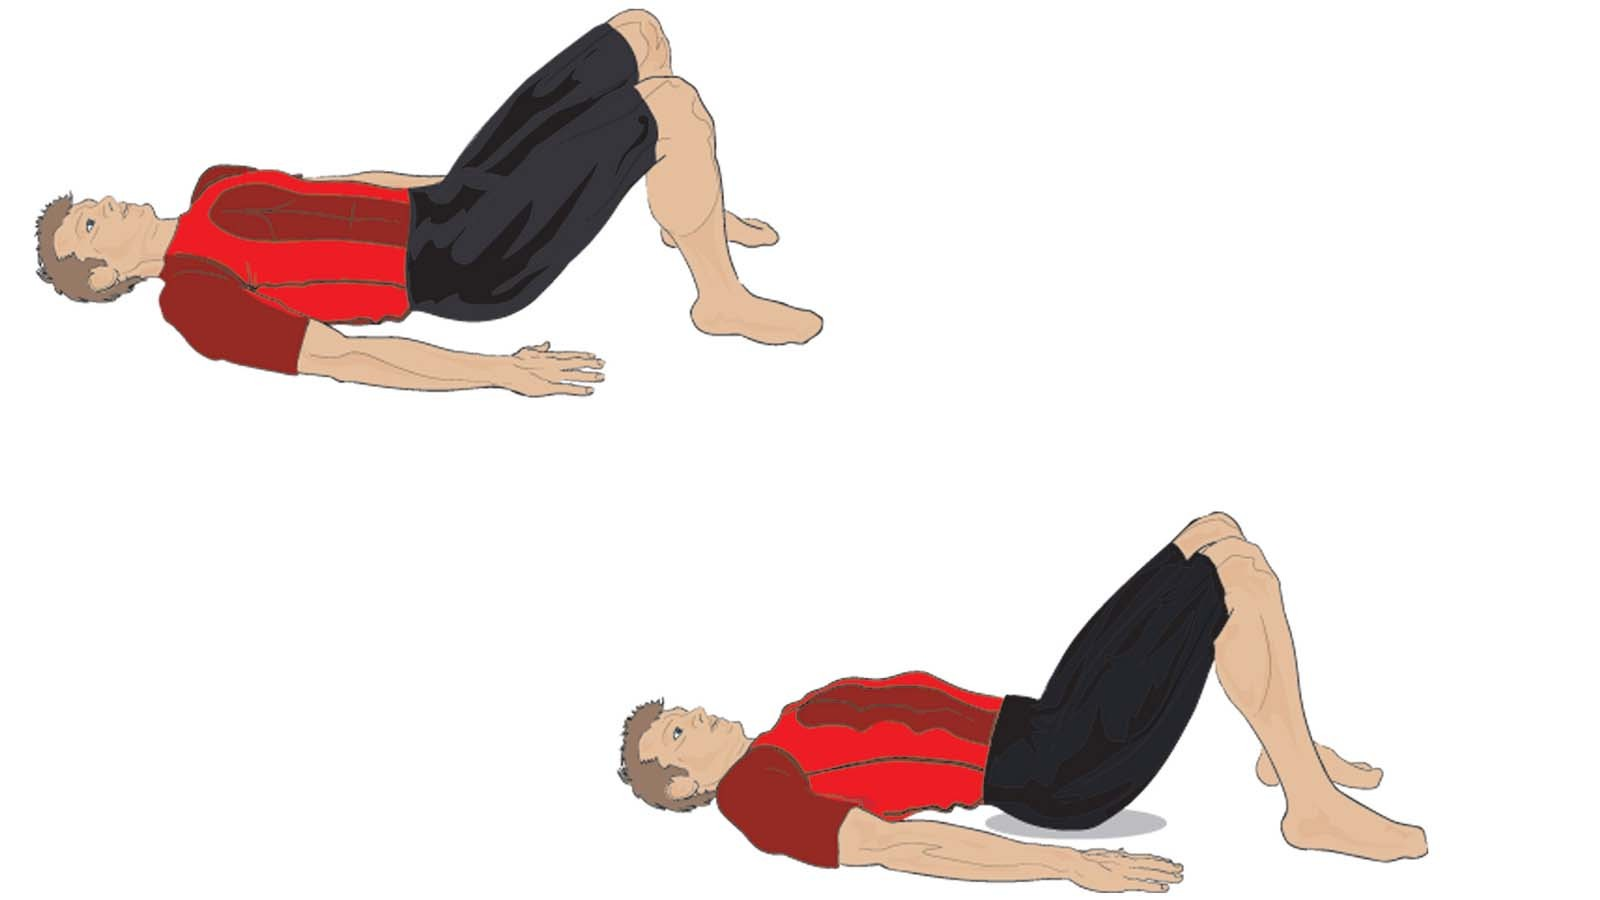 Perform the pelvic tilt by lifting your abs up while lying on your back with your legs angled at 90 degrees